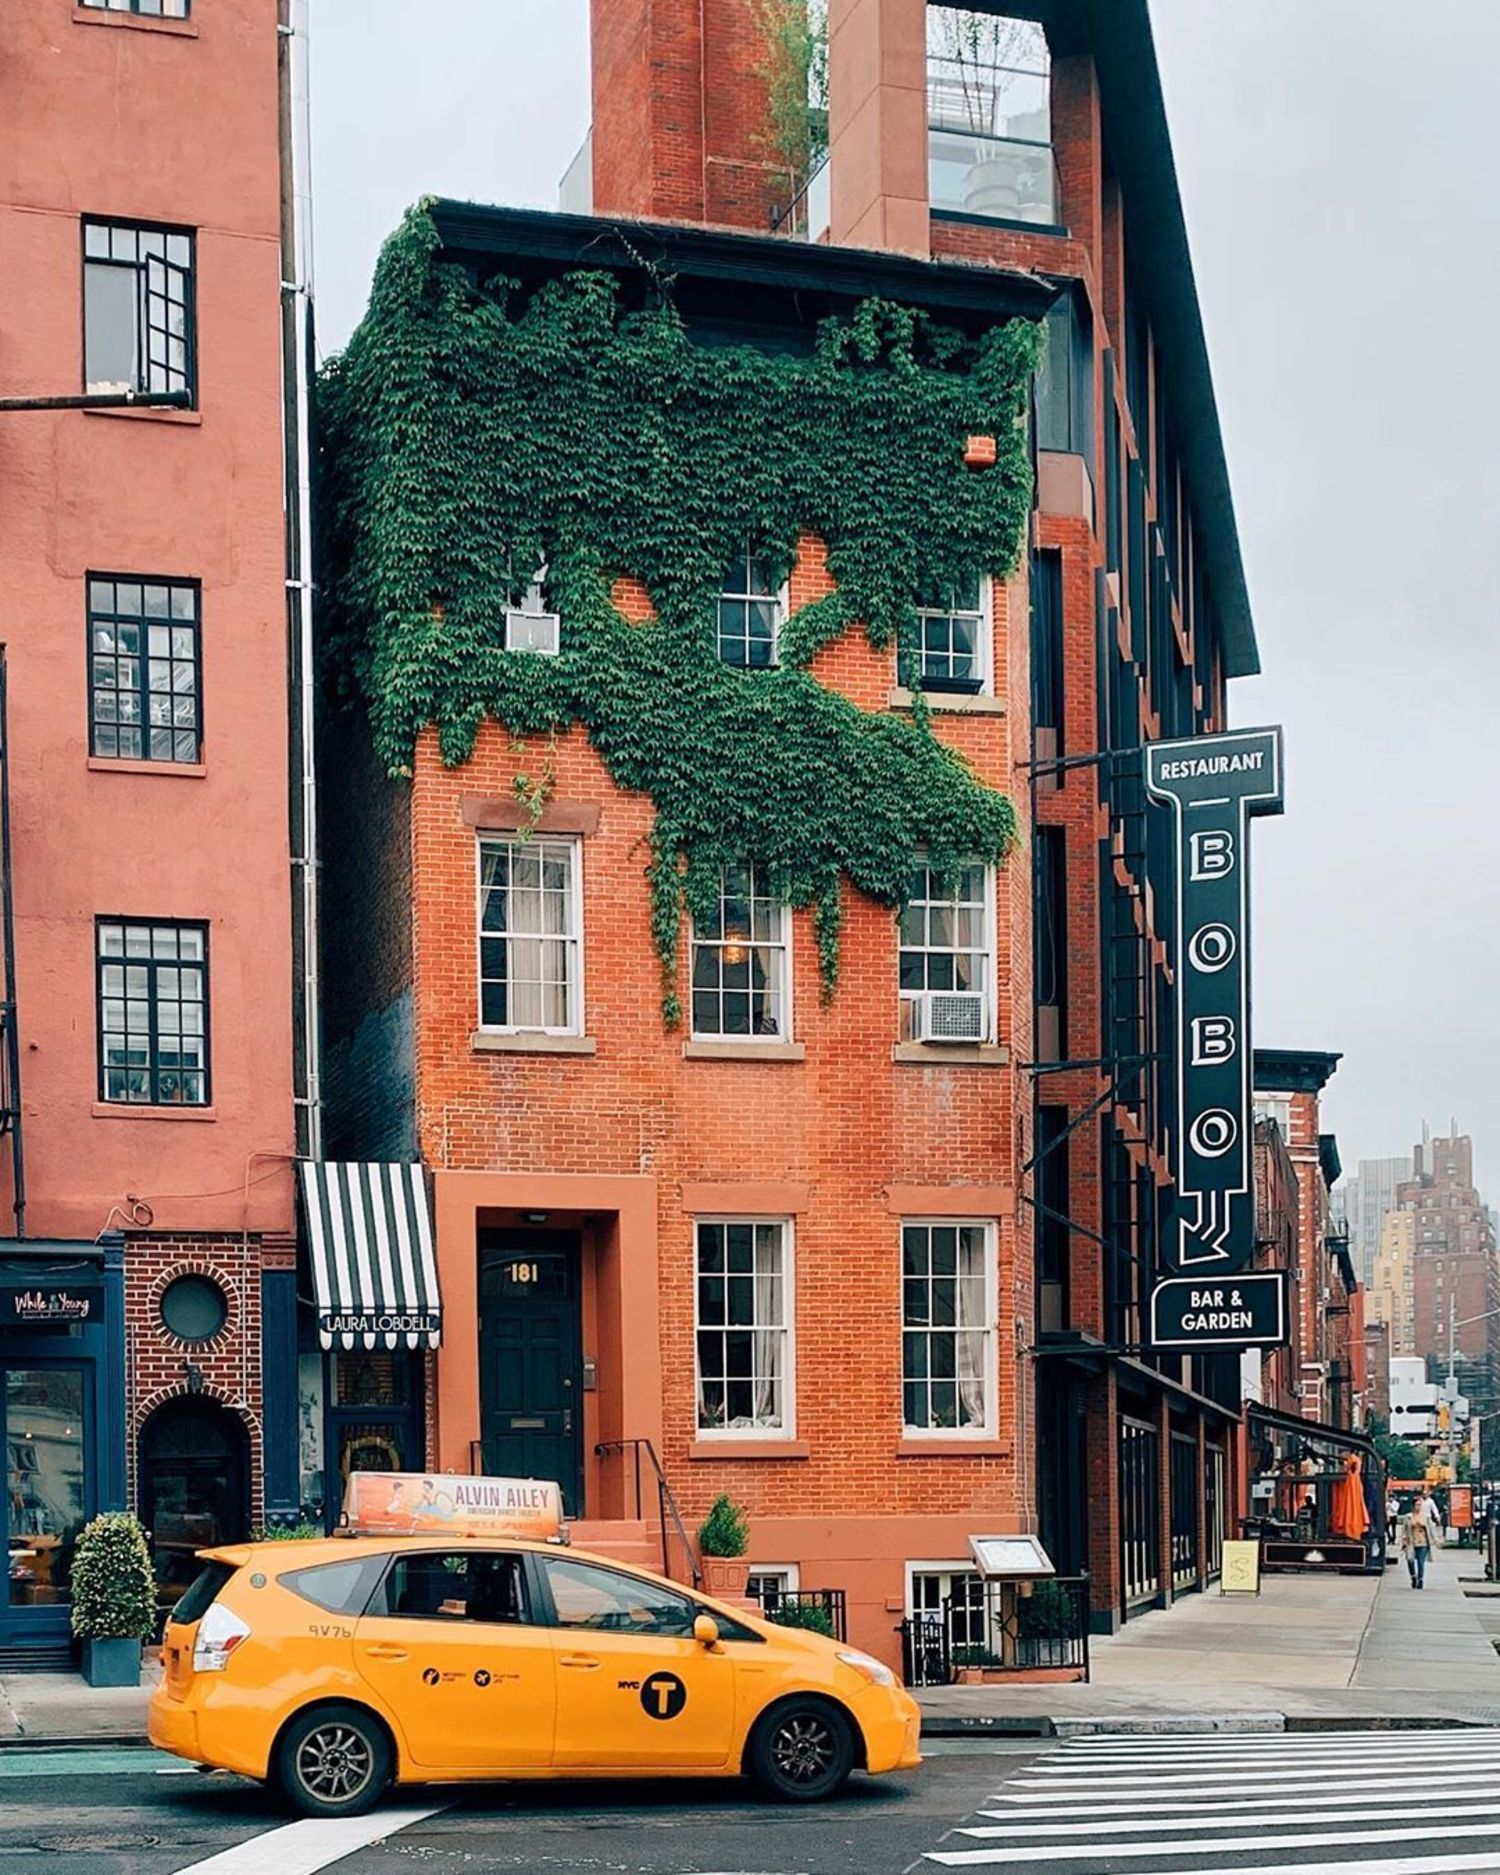 West Village, Manhattan